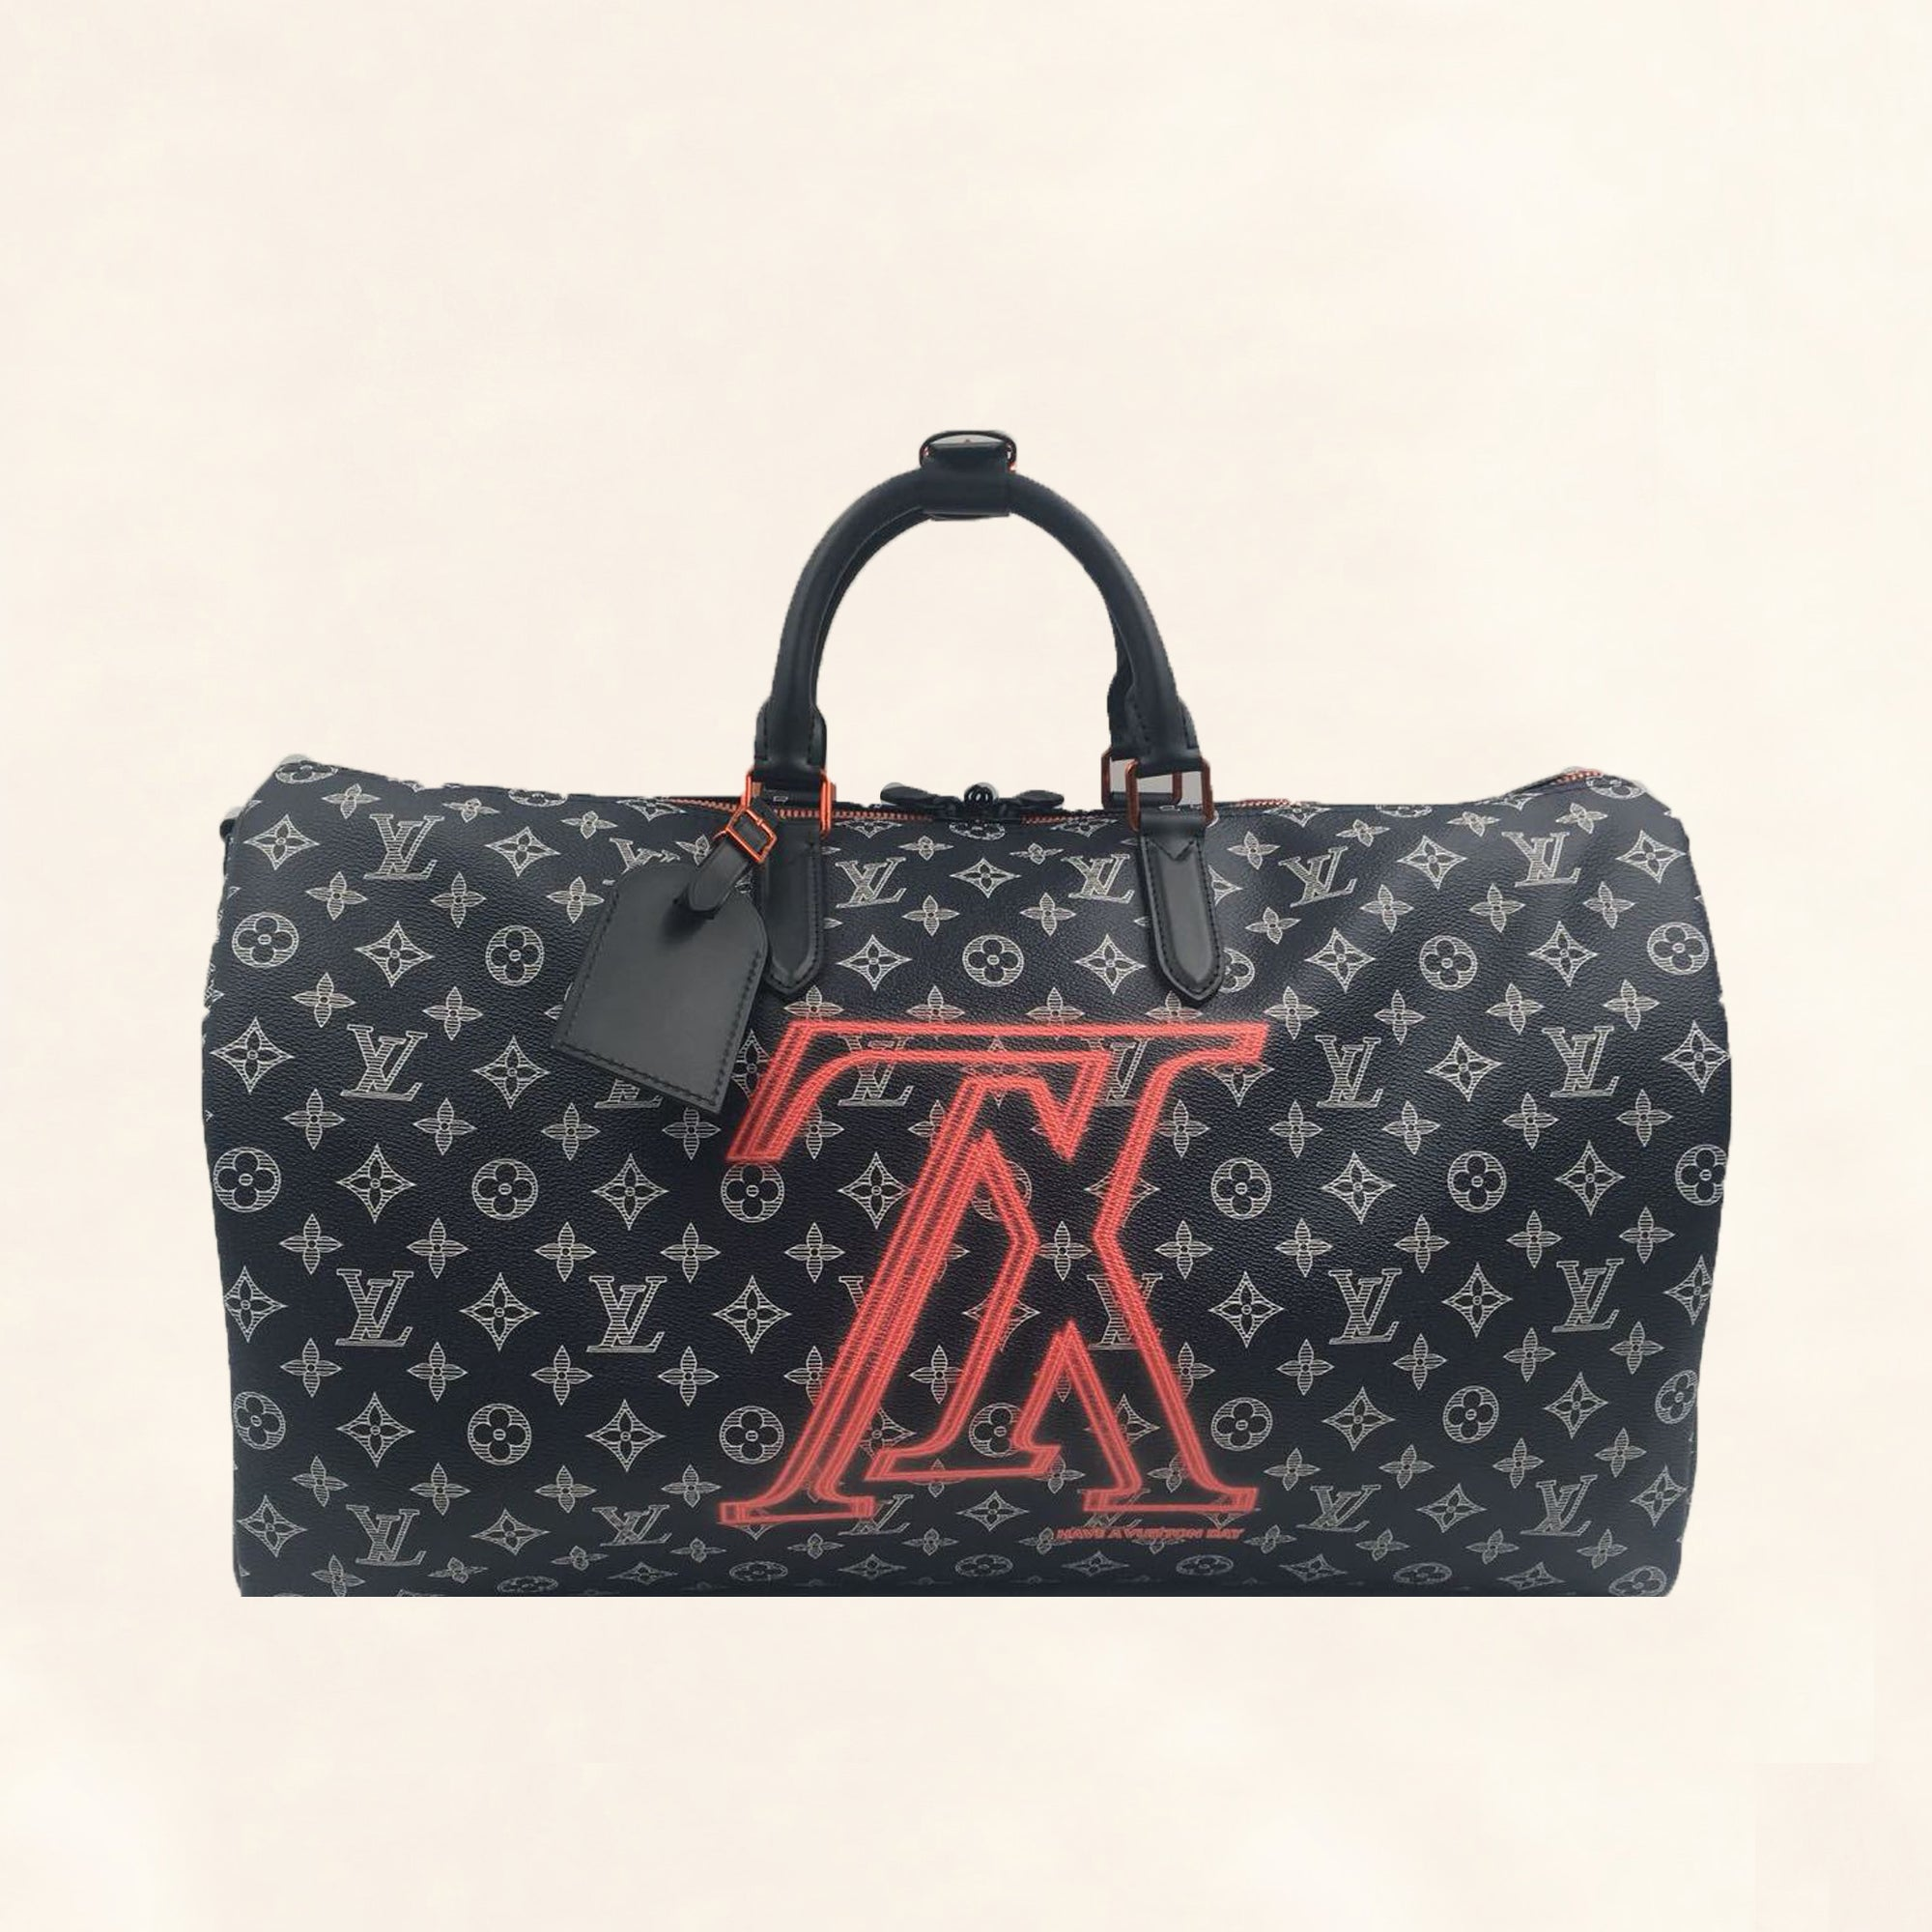 d0fef6c03e4 Louis Vuitton